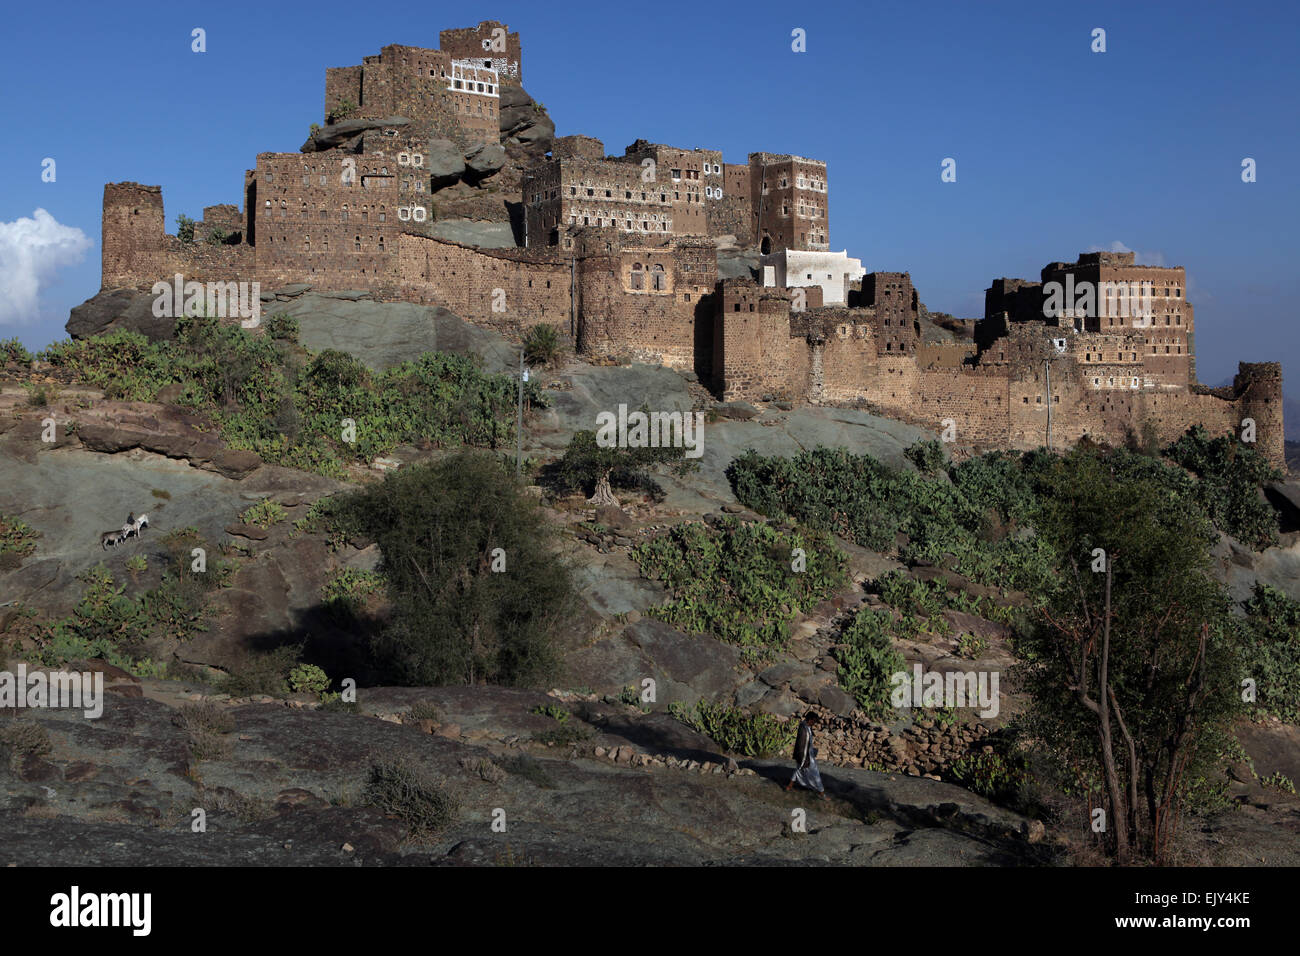 Town in the Haraz mountains, Yemen. - Stock Image